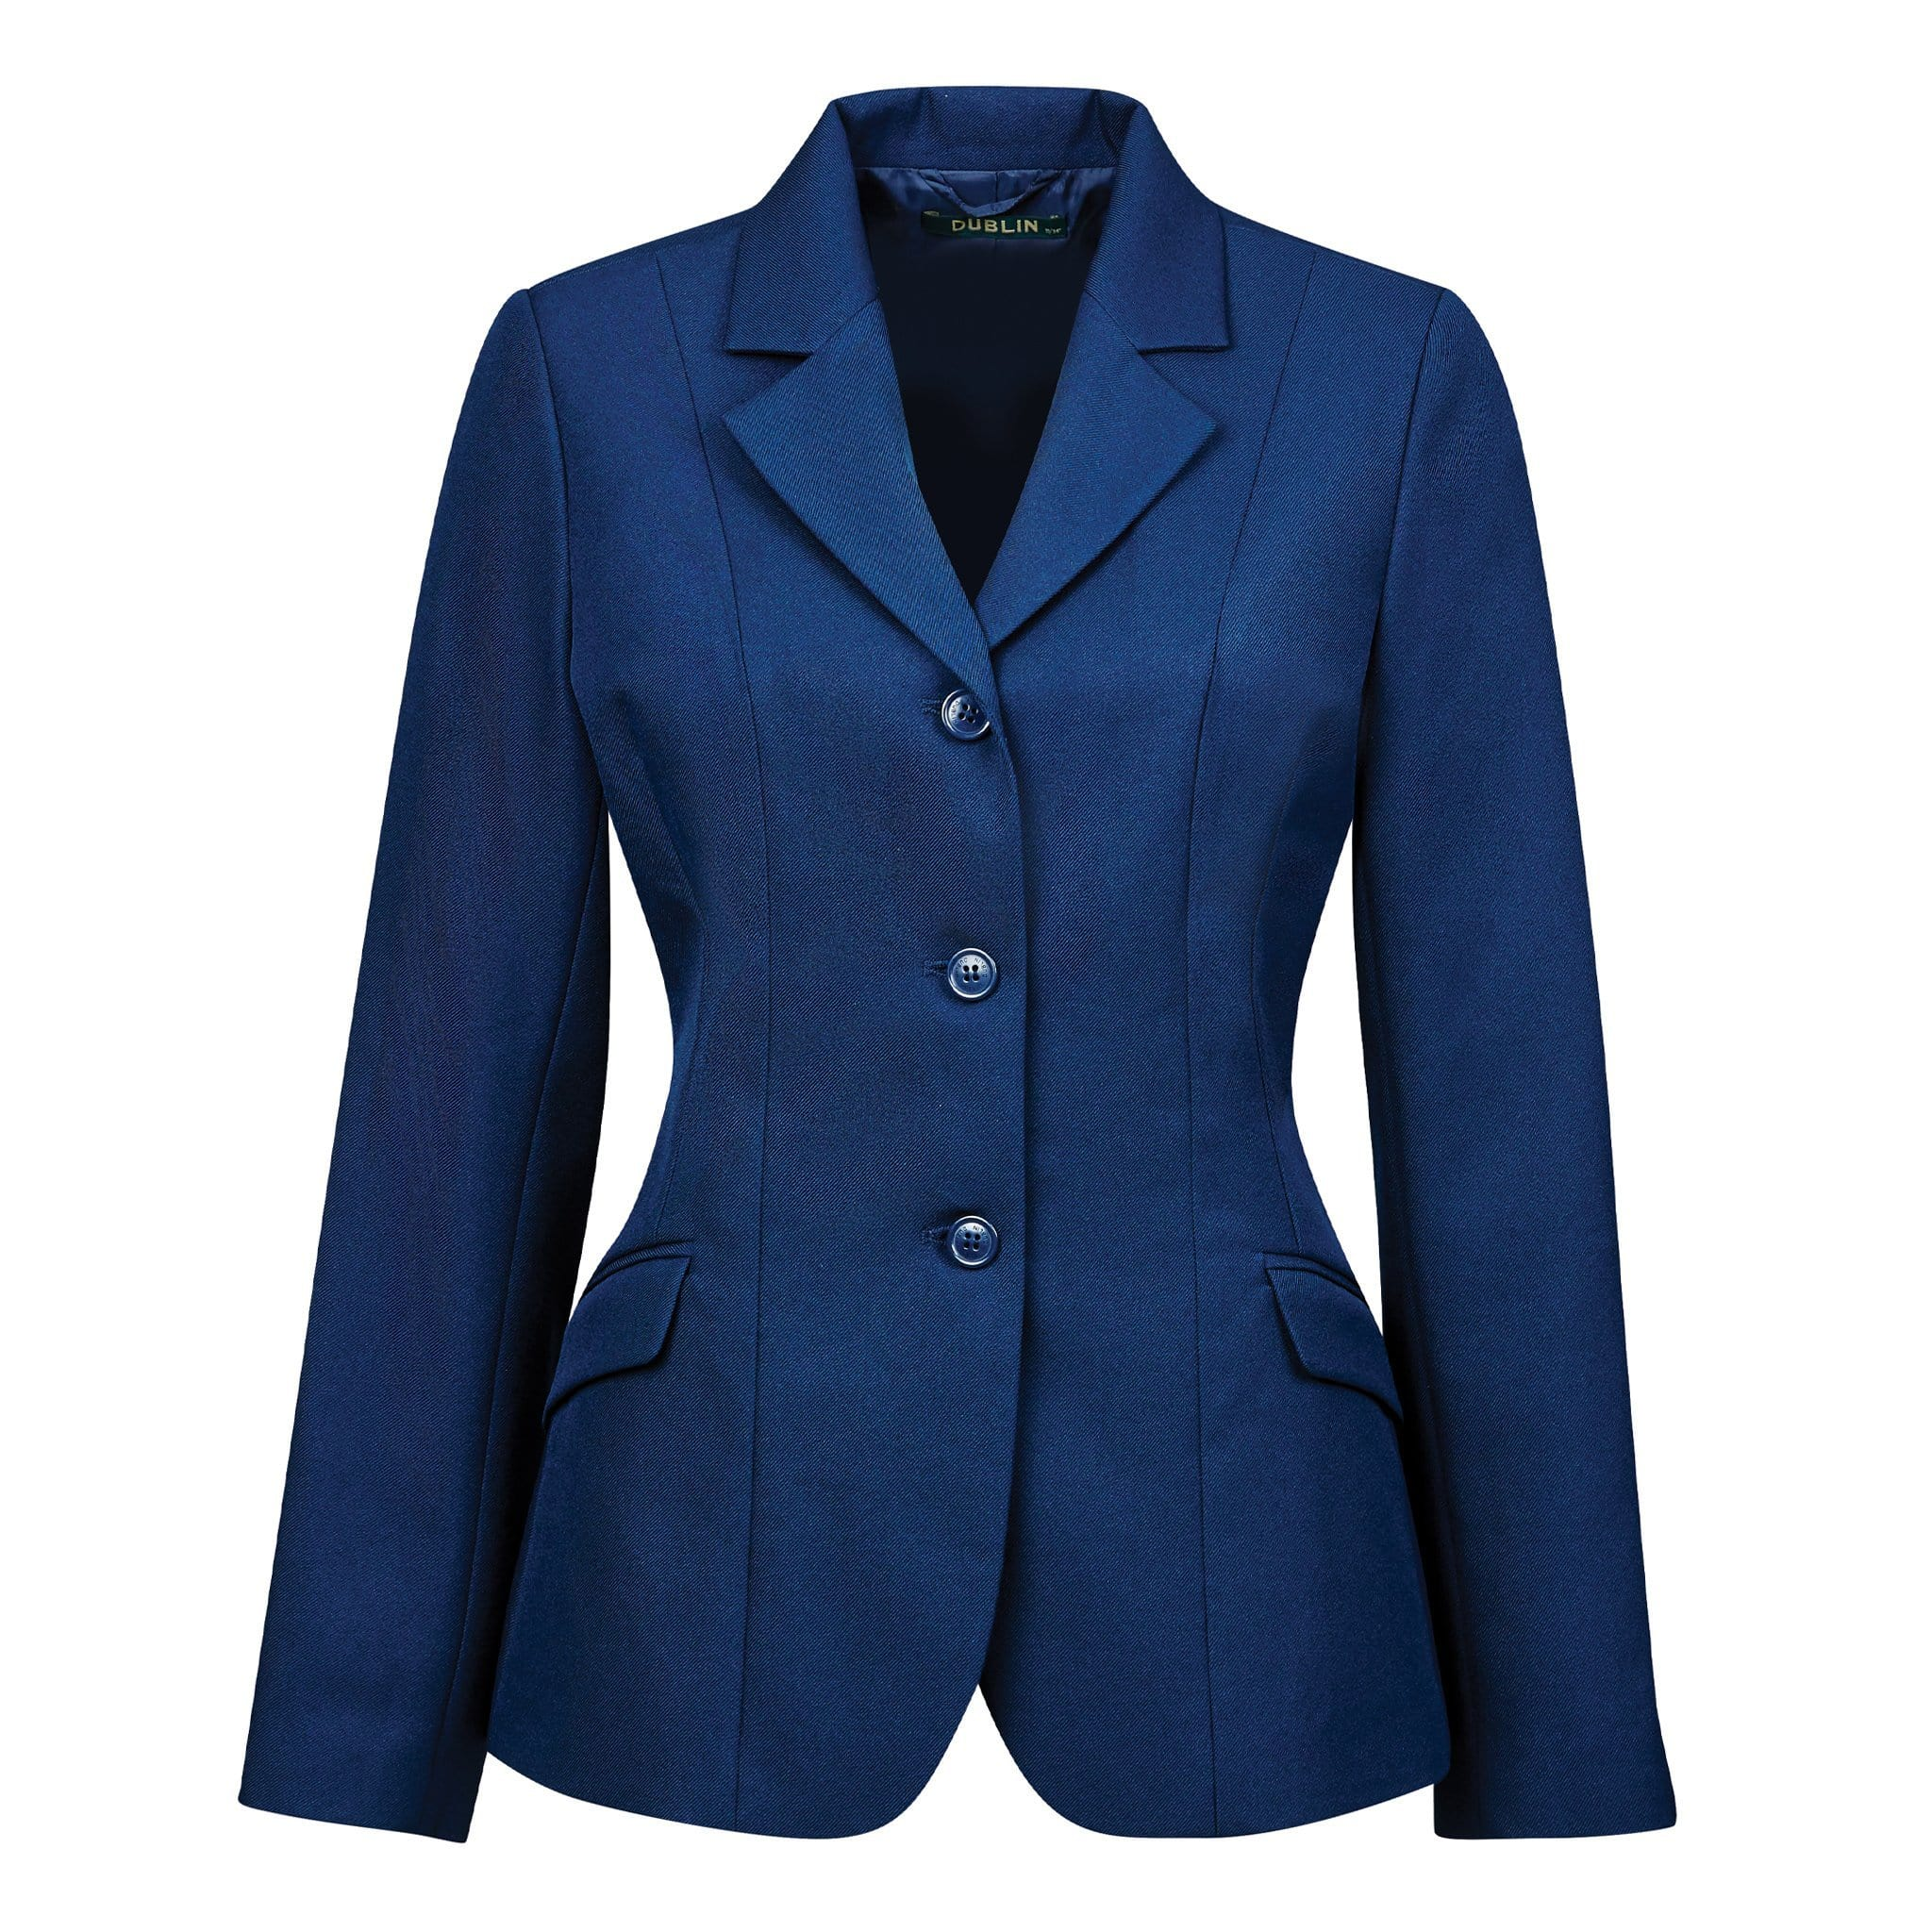 Dublin Girl's Ashby Competition Jacket 589367 Navy Blue Front